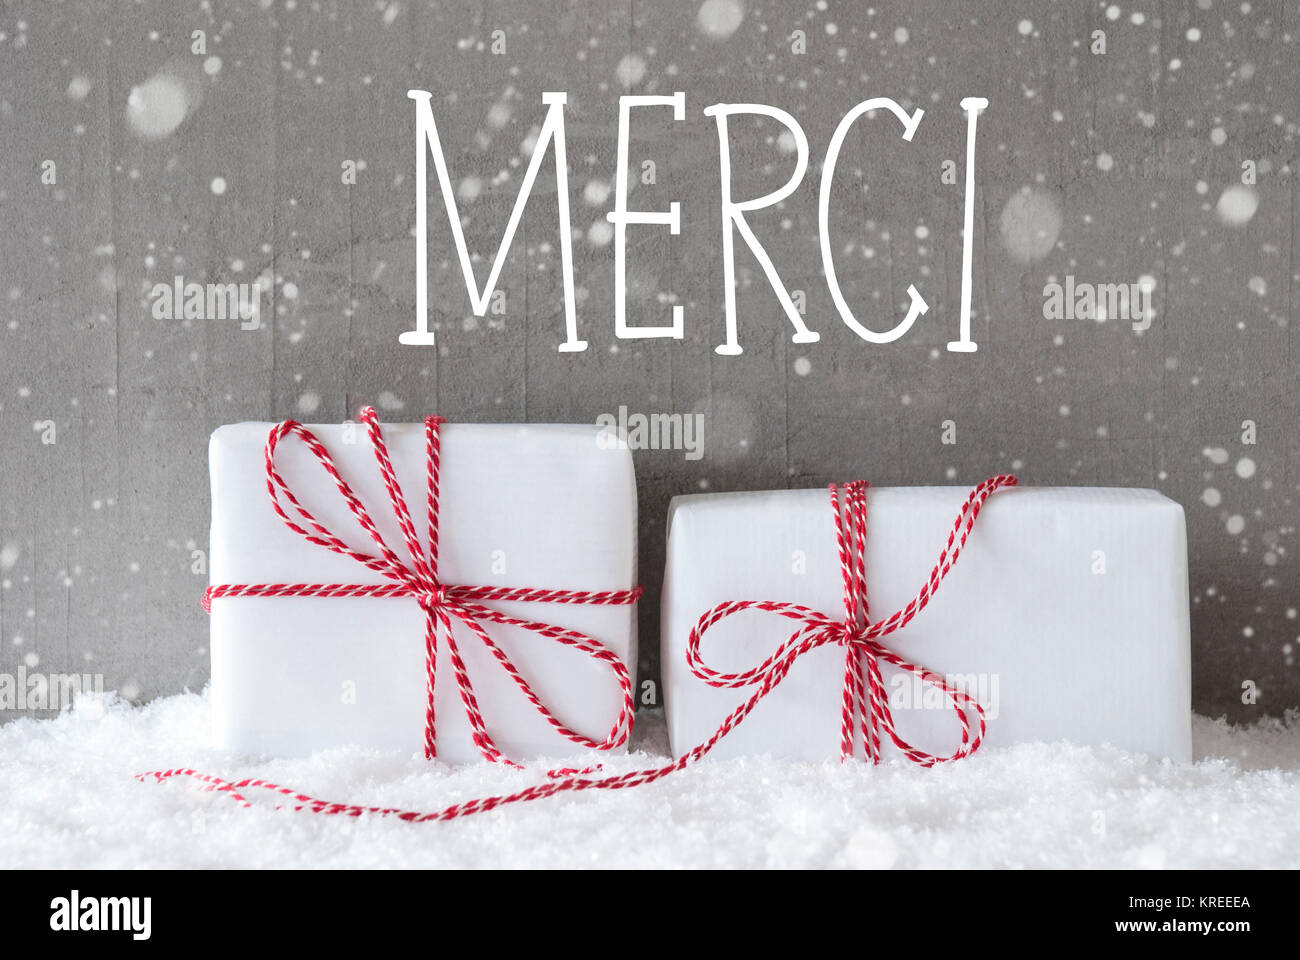 French Text Merci Means Thank You. Two White Christmas Gifts Or ...